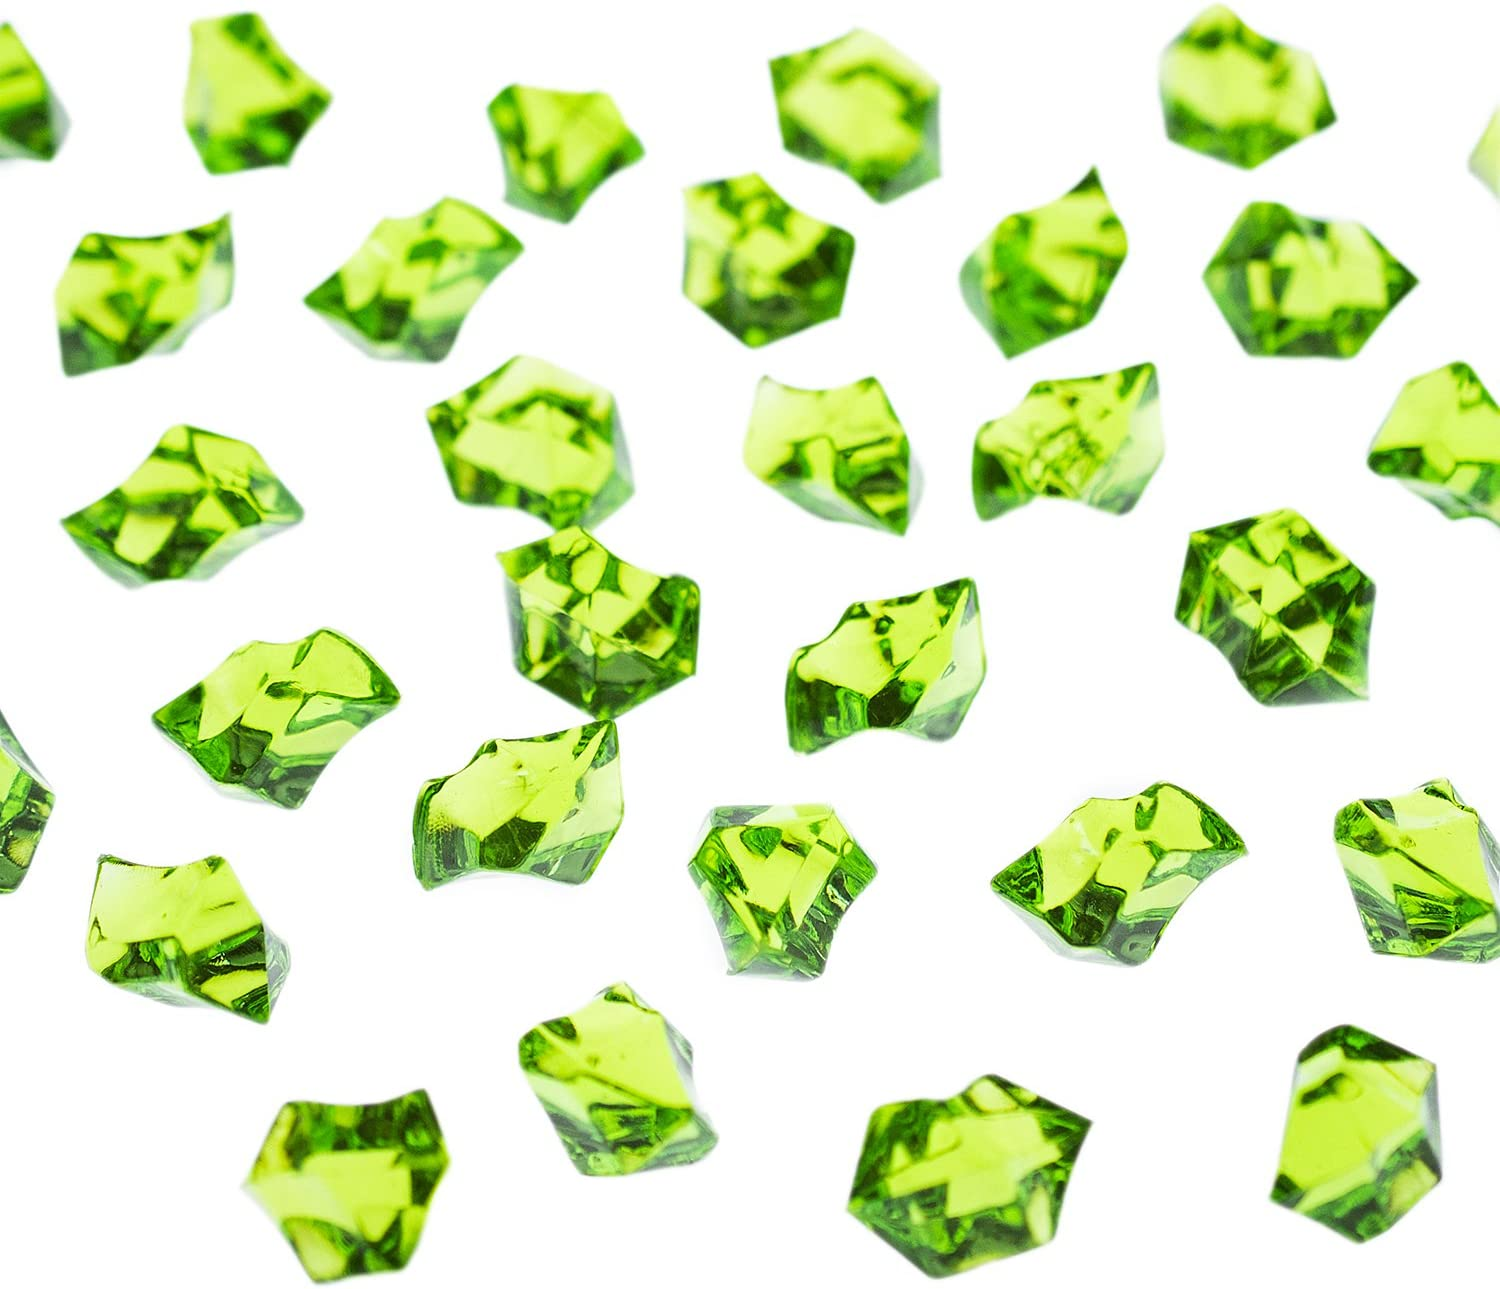 Super Z Outlet Acrylic Color Ice Rock Crystals Treasure Gems for Table Scatters, Vase Fillers, Event, Wedding, Arts & Crafts, Birthday Decoration Favor (190 Pieces) (Apple Green)